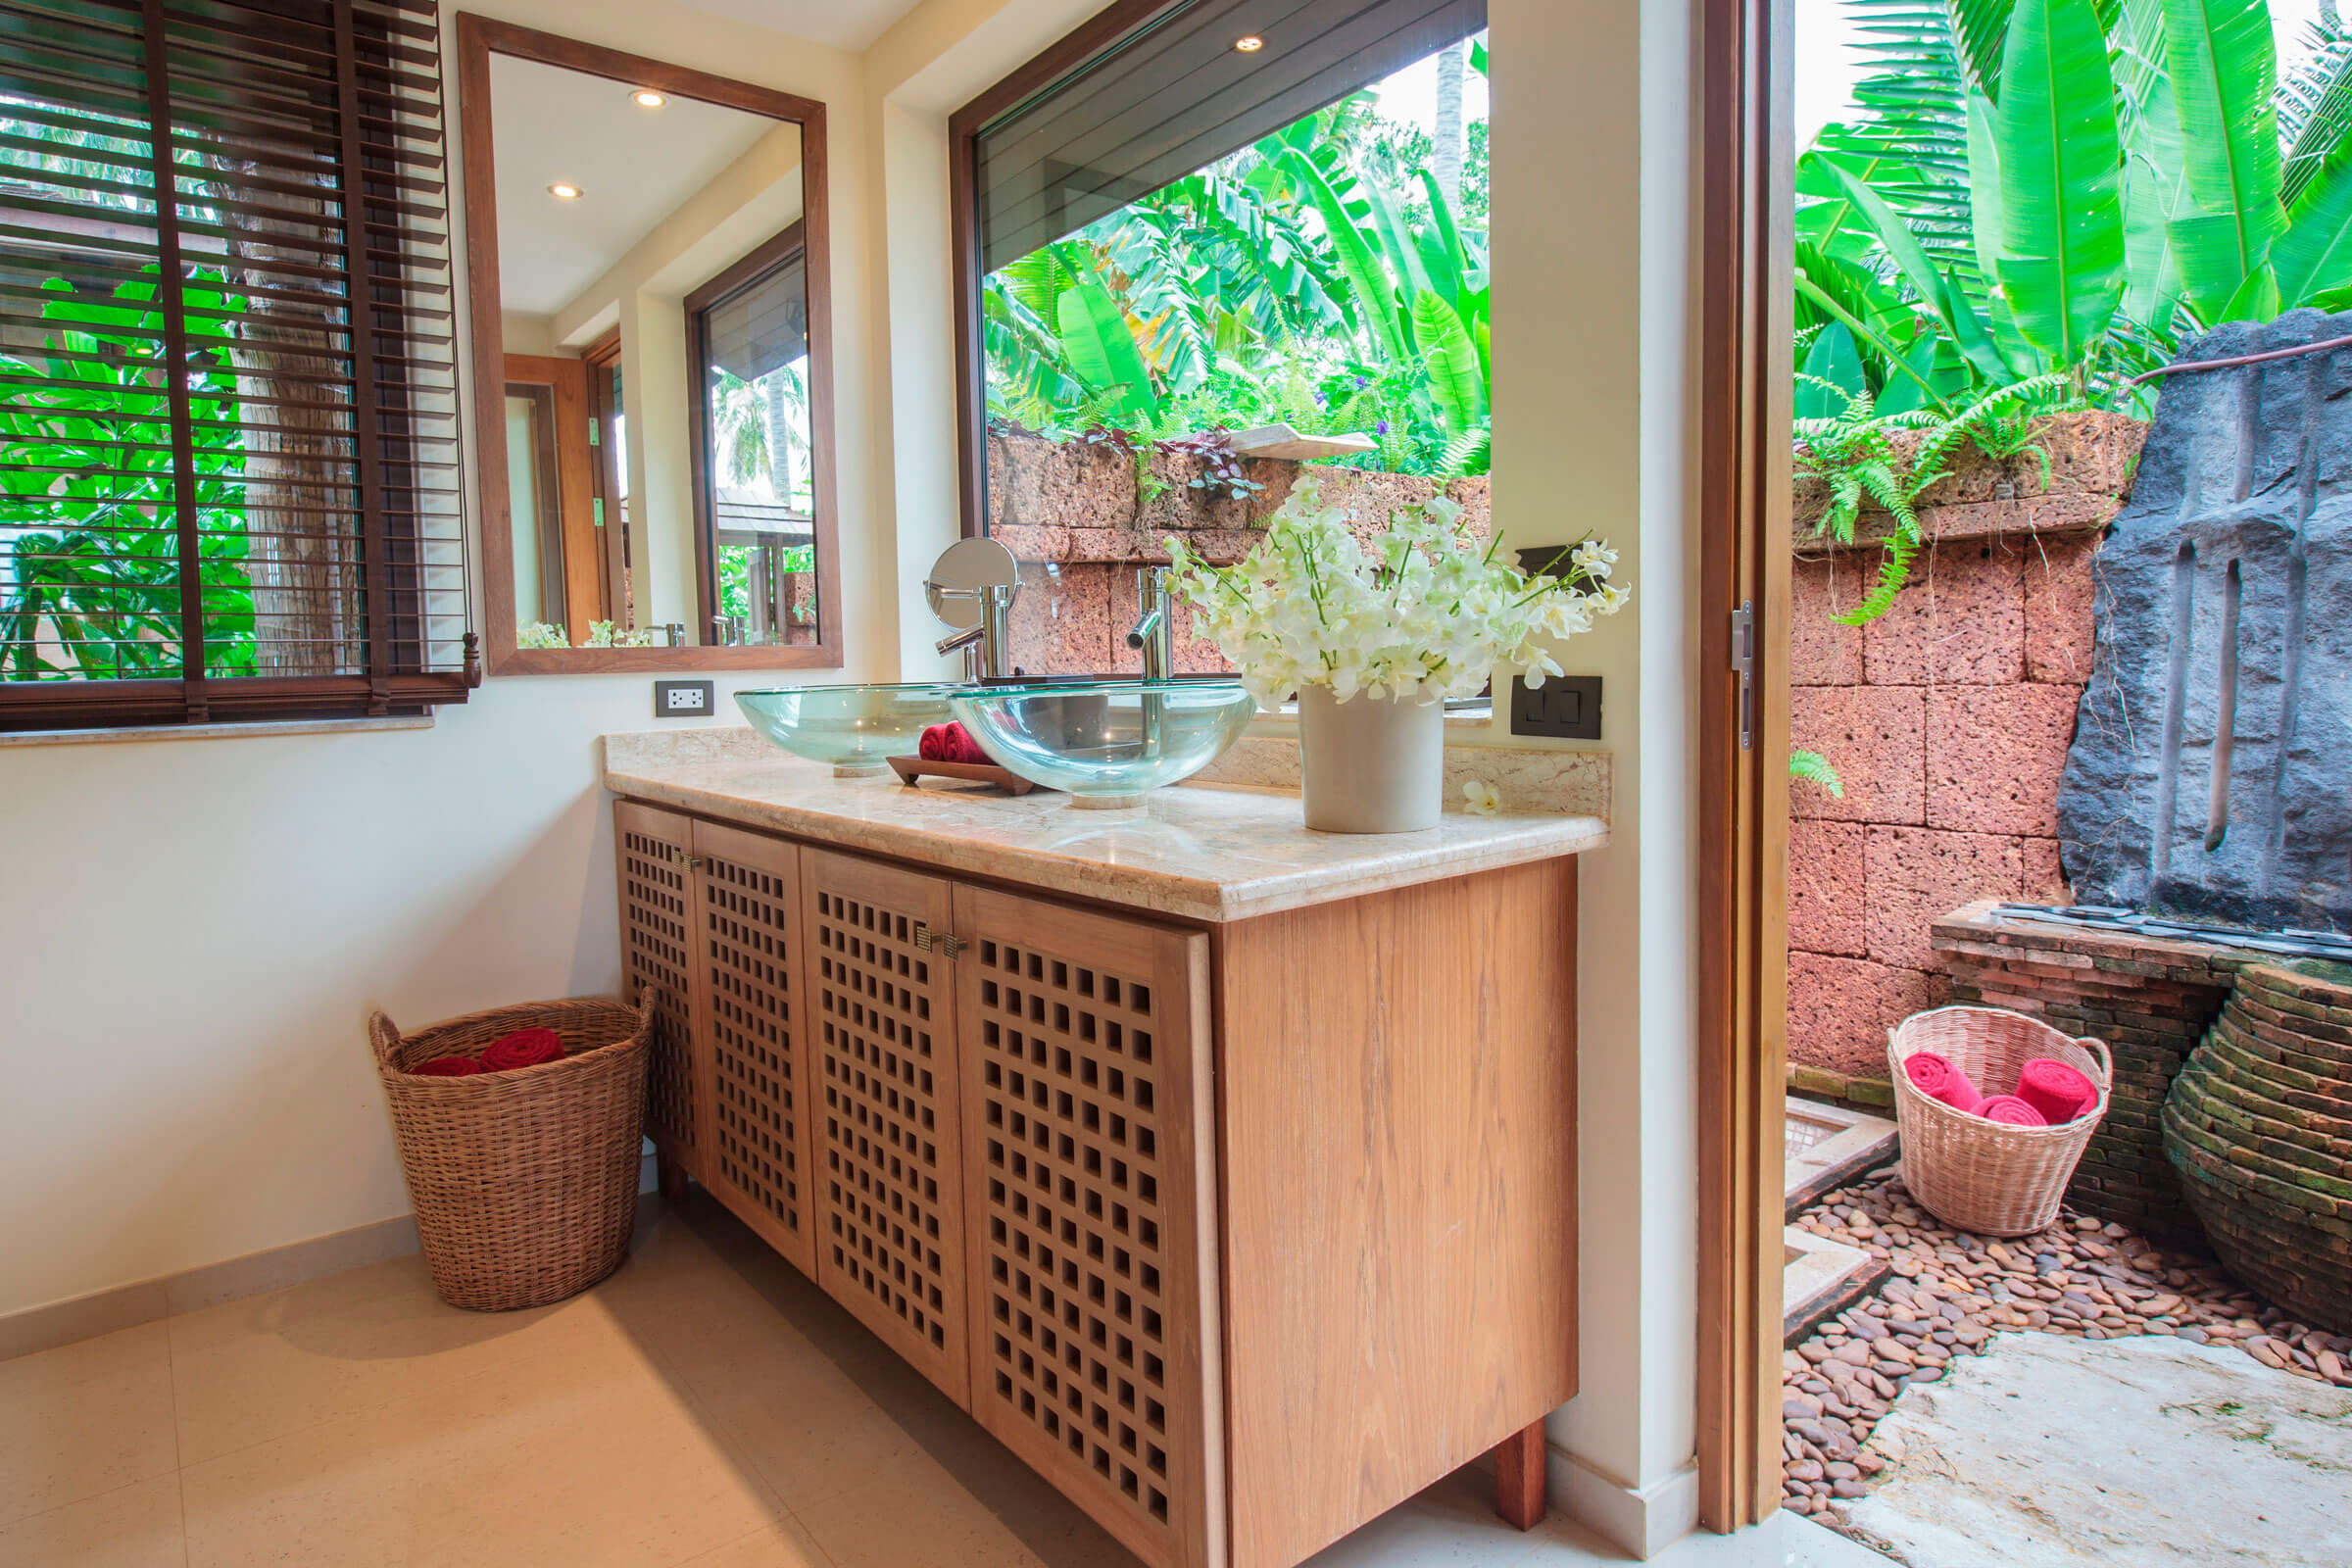 Bathroom with outdoor area